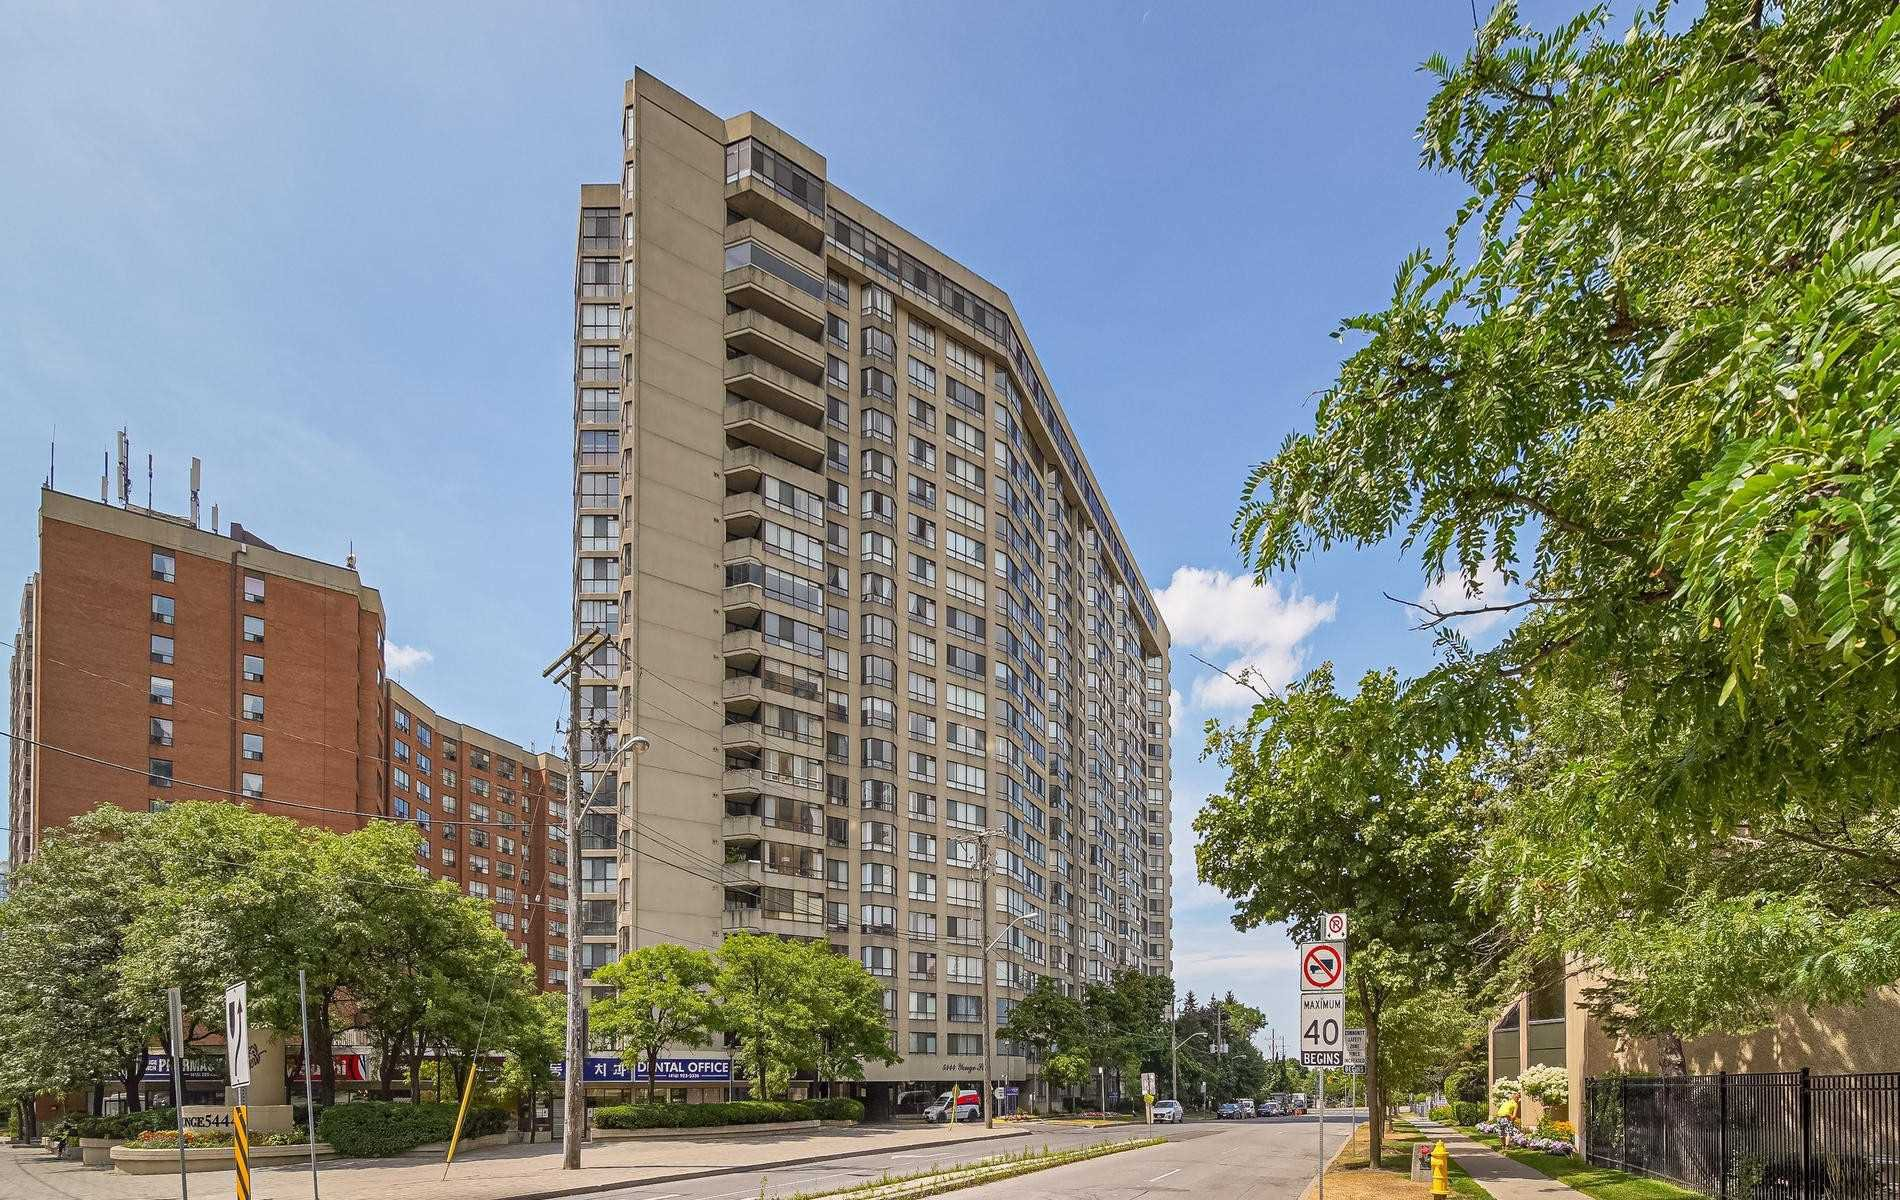 Main Photo: 802A 5444 Yonge Street in Toronto: Willowdale West Condo for sale (Toronto C07)  : MLS®# C4832619